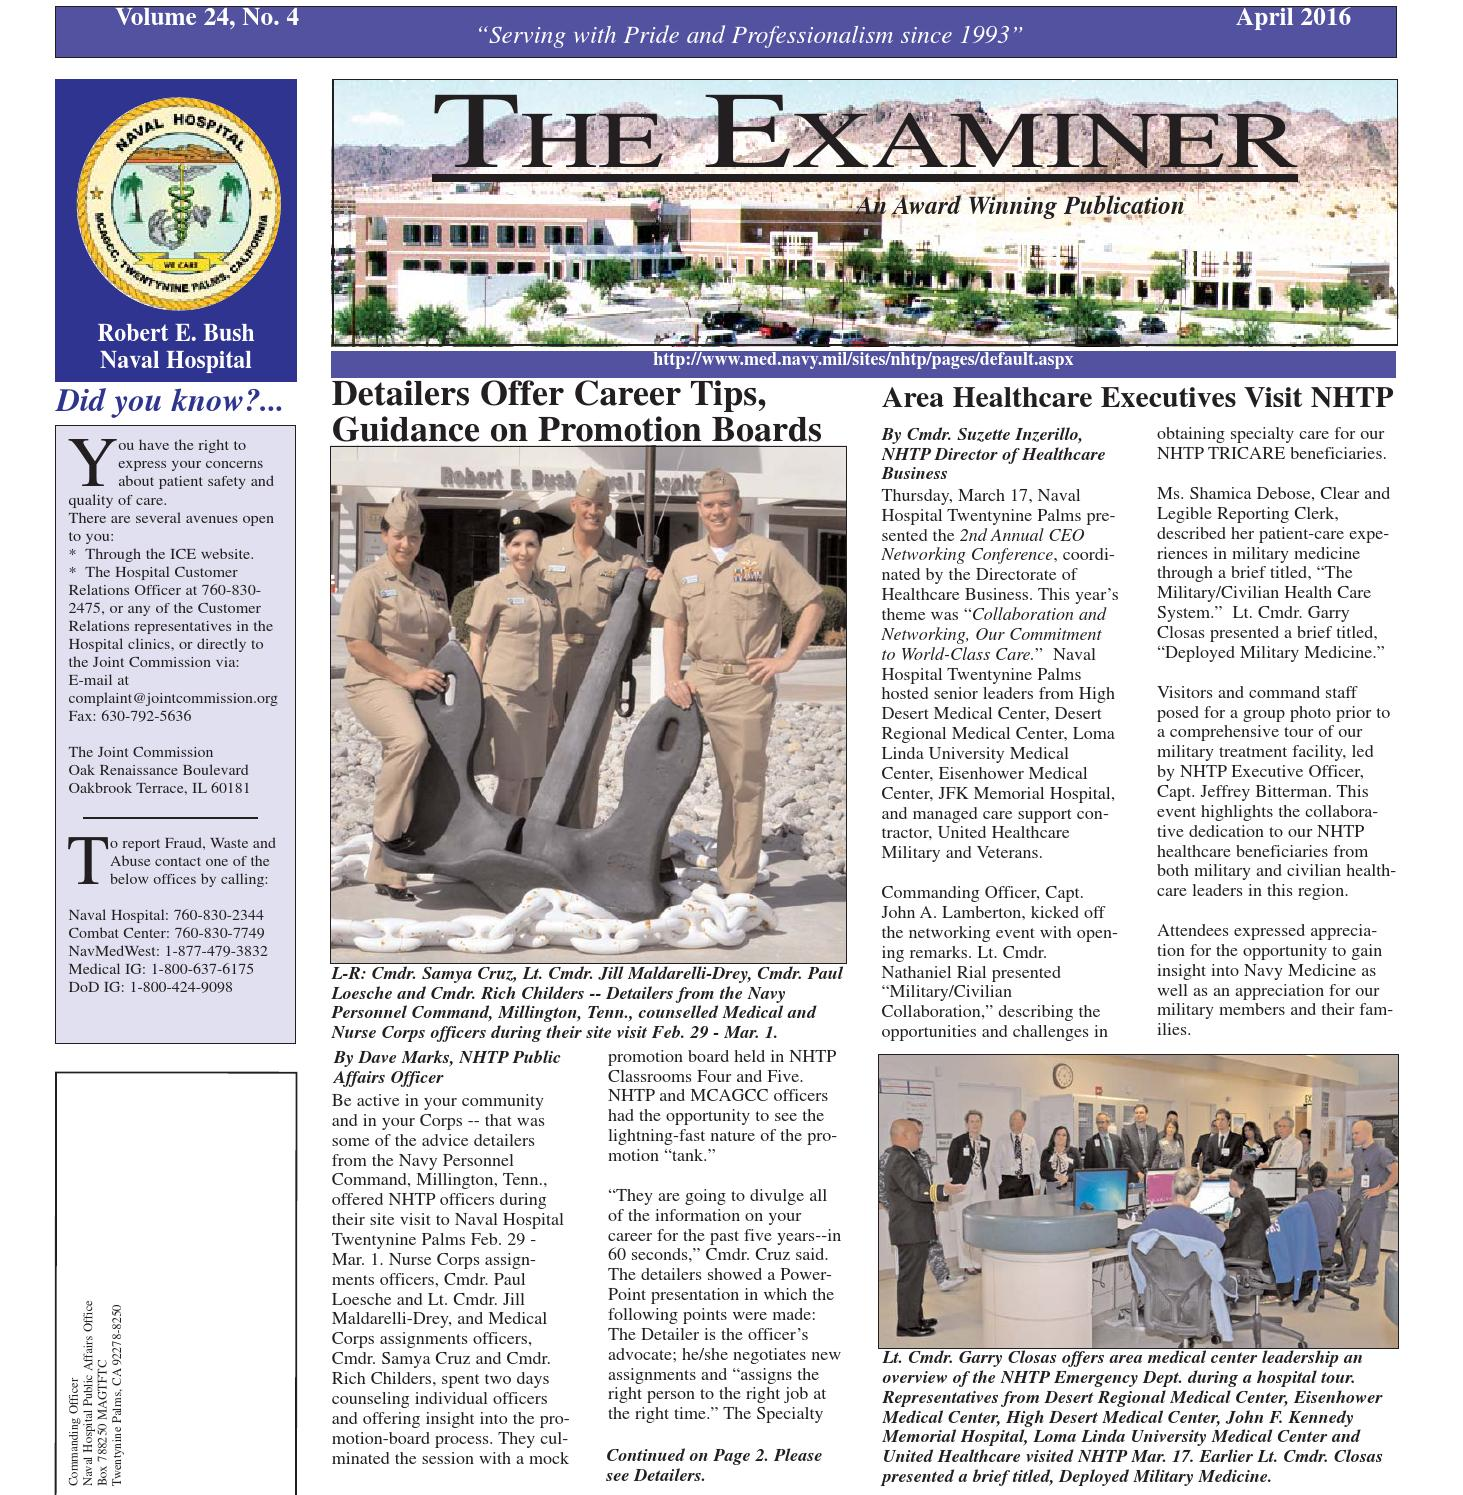 April 2016 examiner by david marks issuu for 1 renaissance blvd oakbrook terrace il